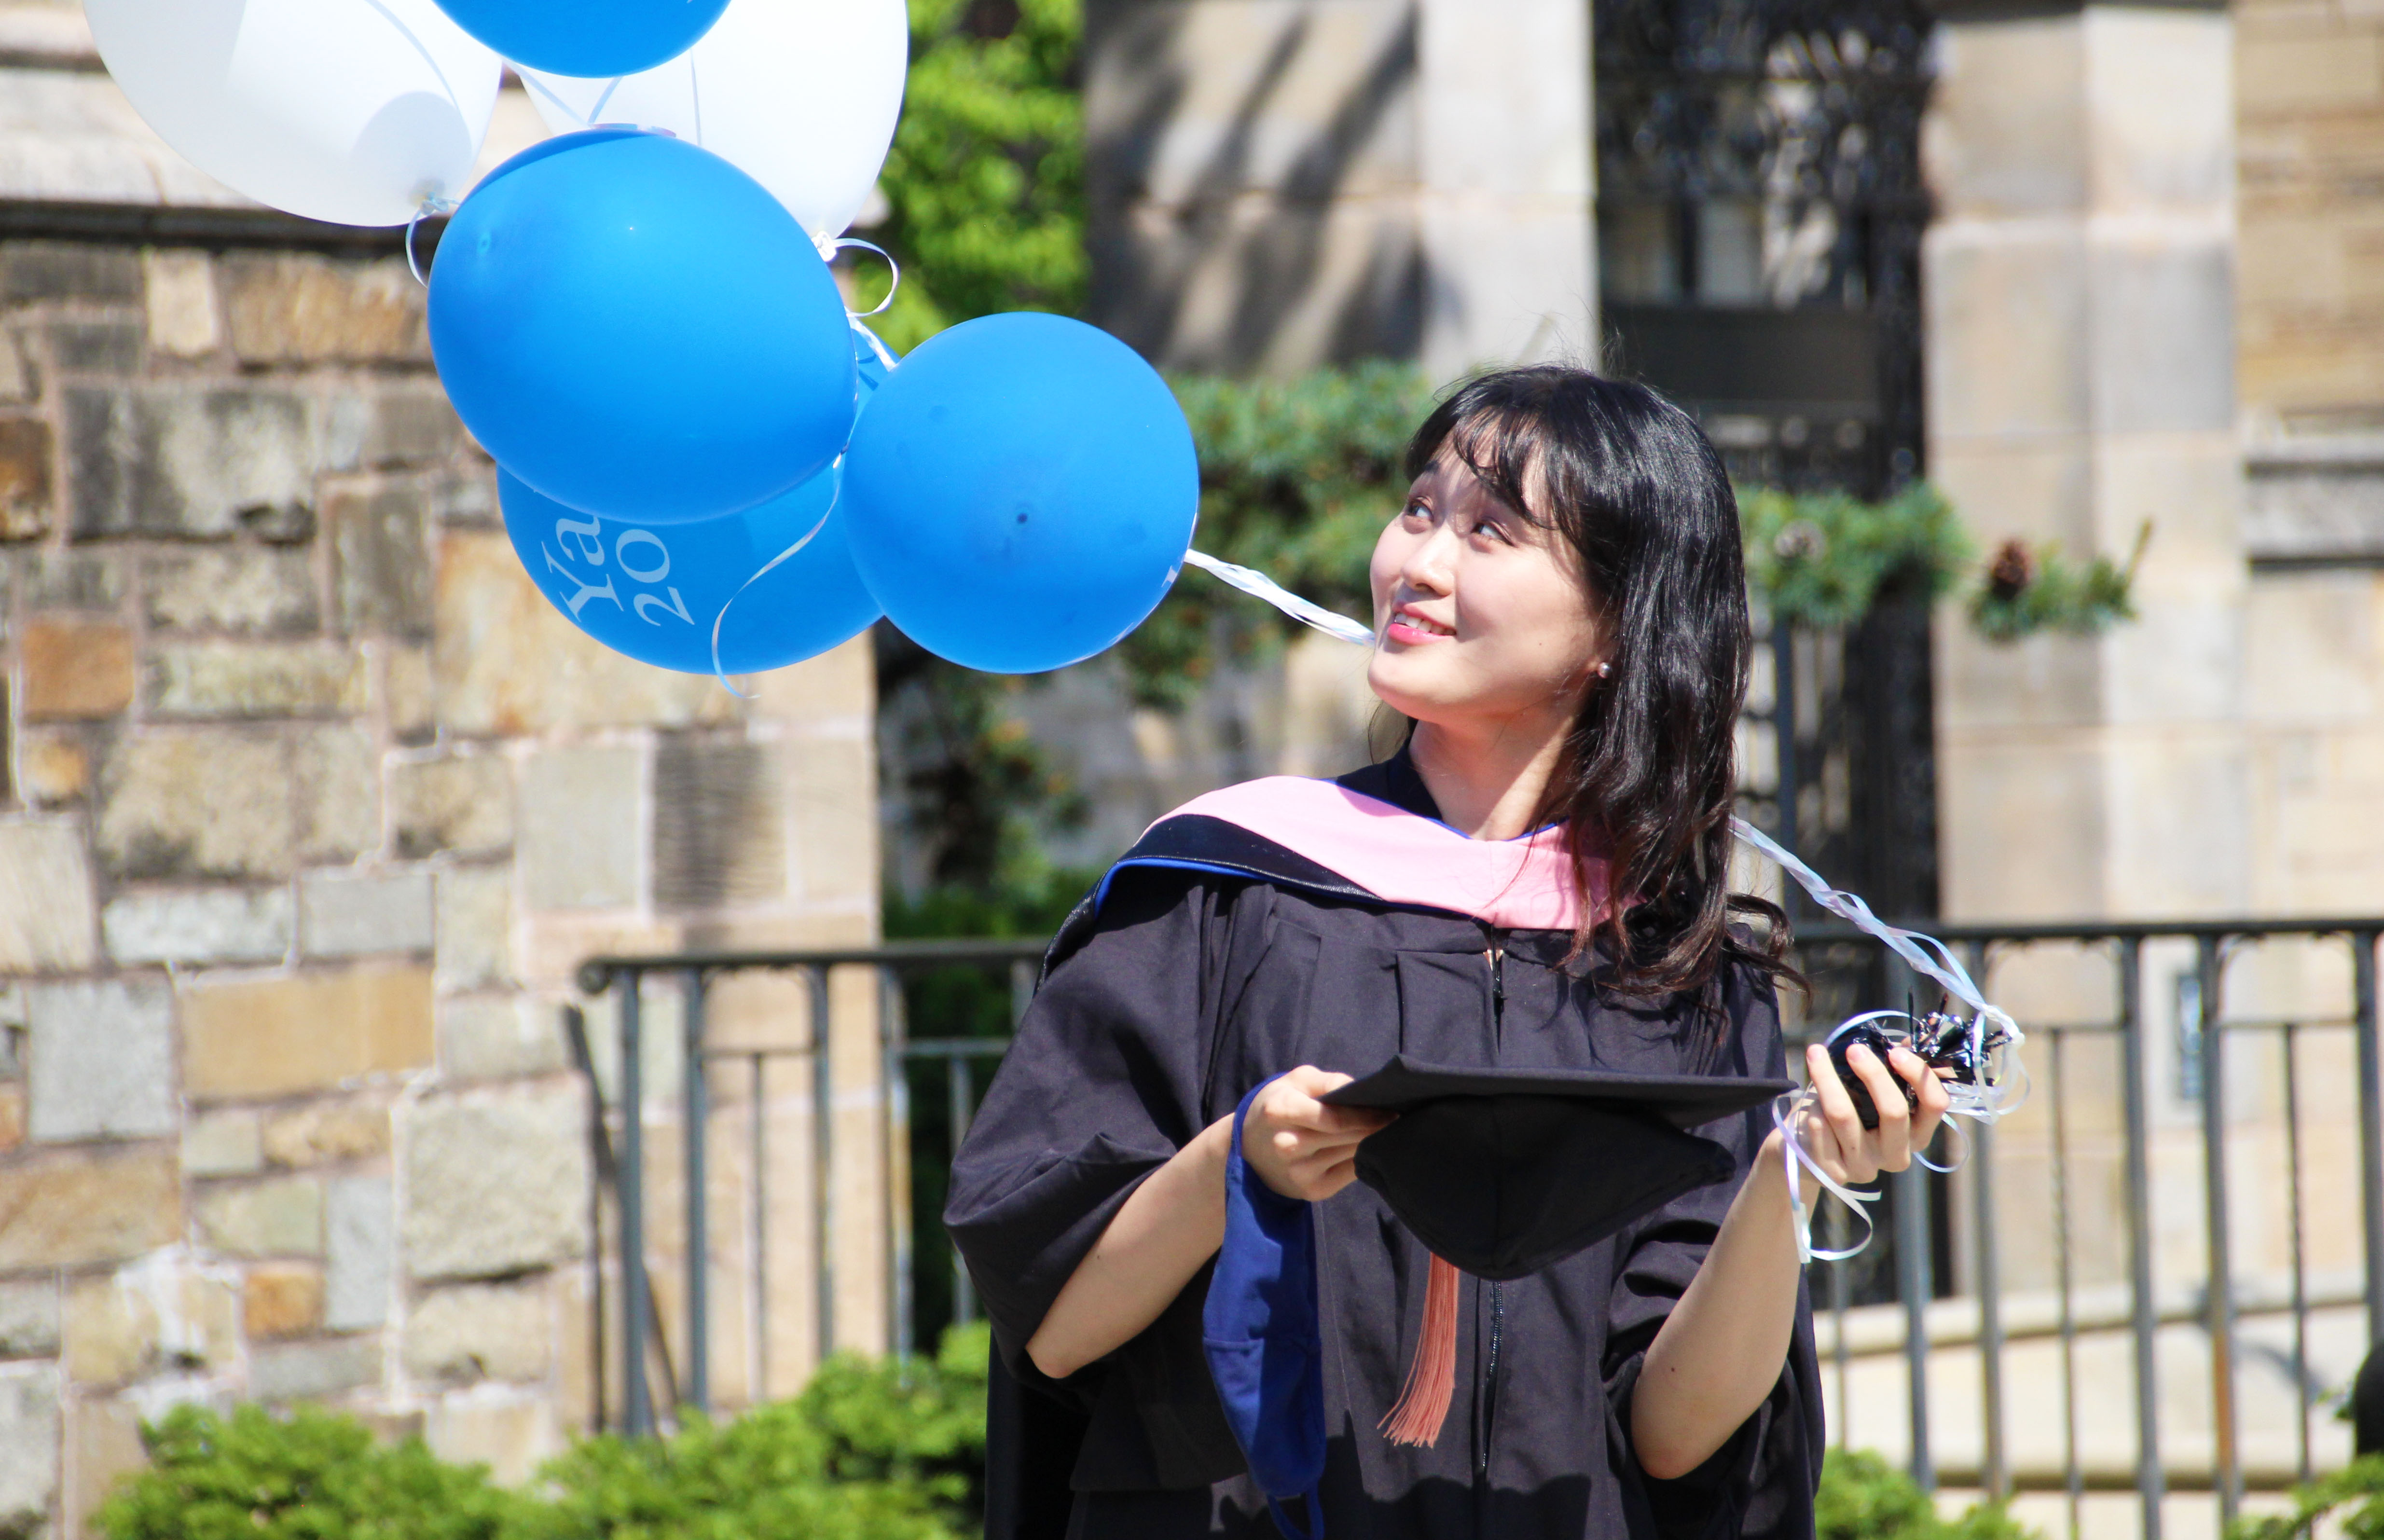 happy student with balloons